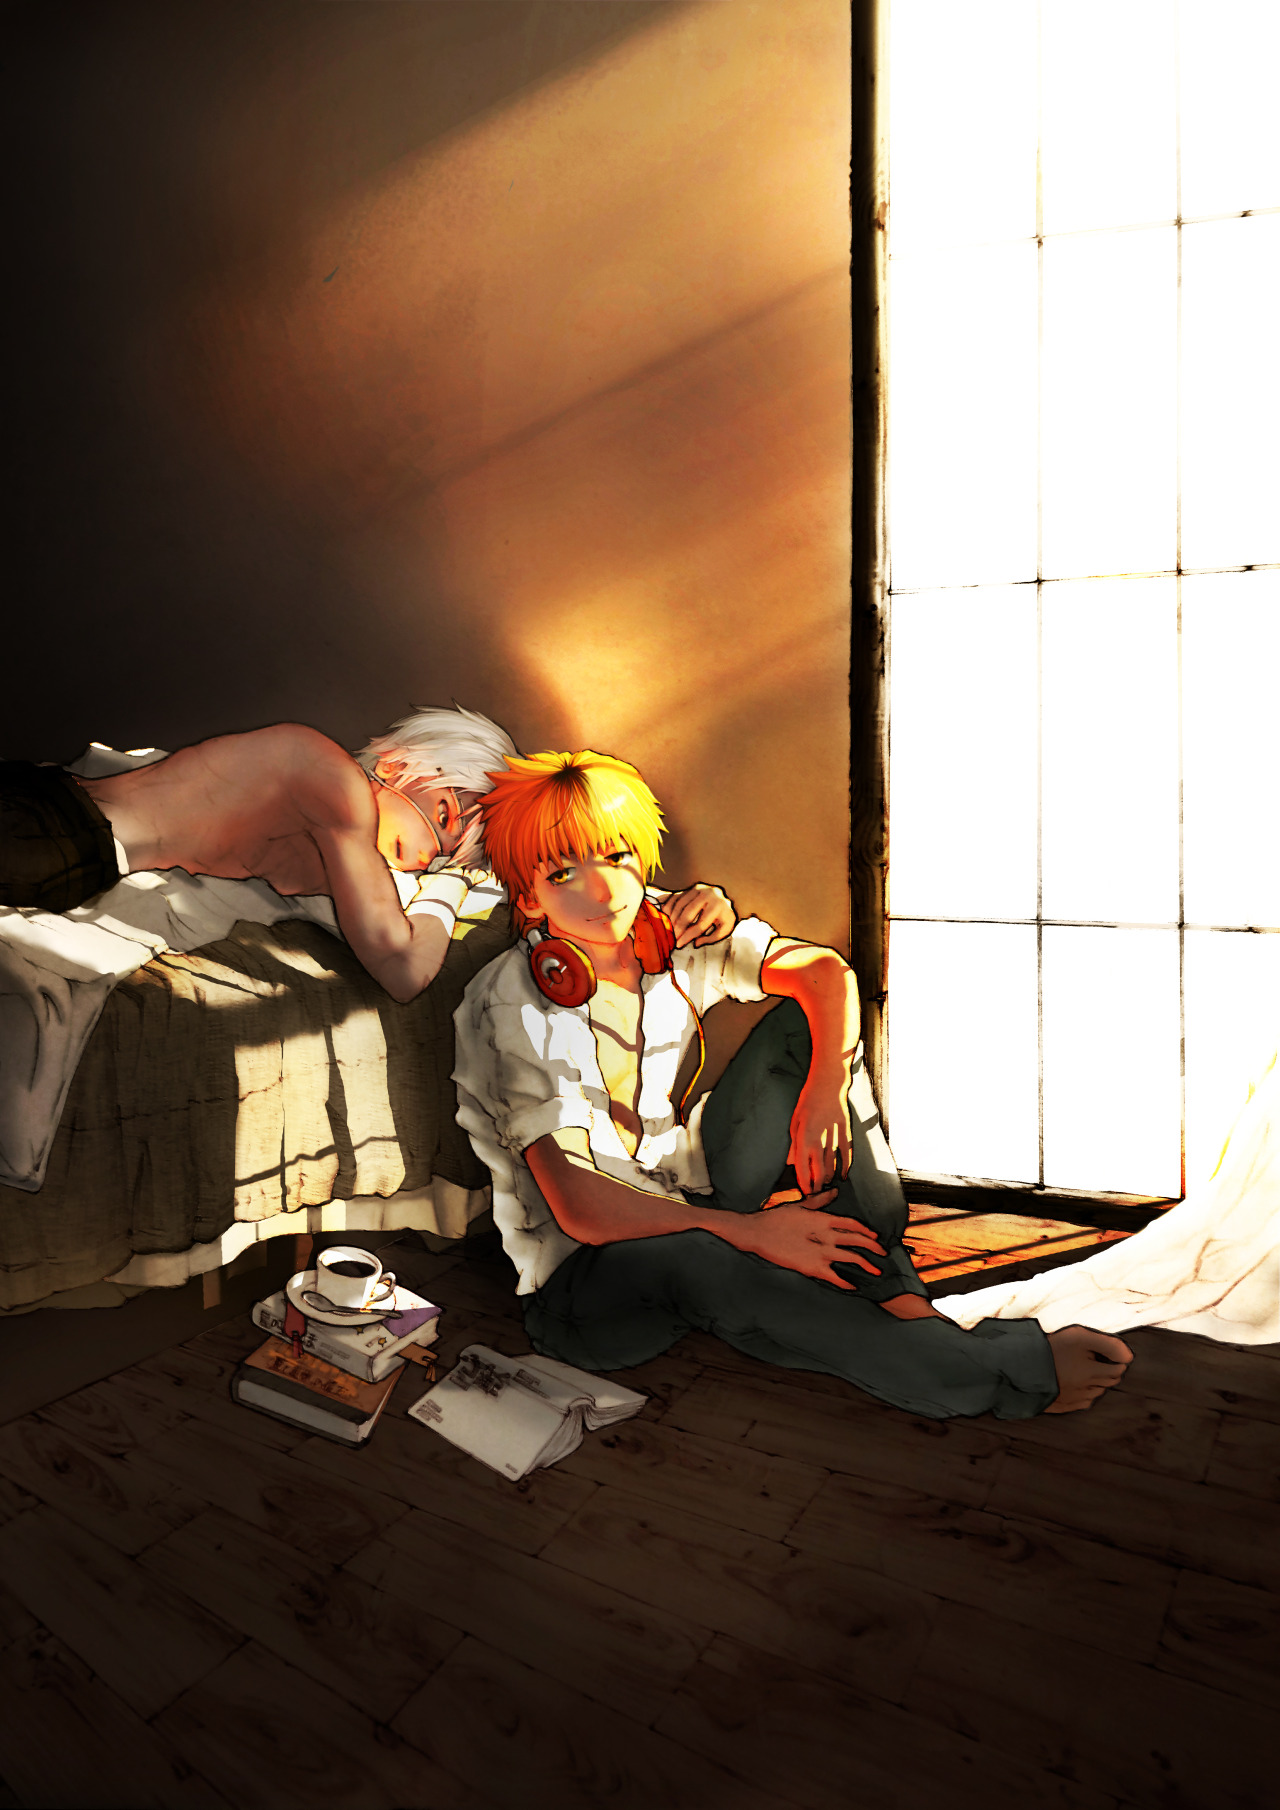 cute HideKane iPhone wallpaper Ken lying on the bed and Hide sitting next to it Tokyo Ghoul yaoi fanart Ken Kaneki x Nagachika Hideyoshi TG couple morning lightrays bedroom - Lightrays tokyo-ghoul-yaoi Sleeping Nagachika Hideyoshi Ken Kaneki HideKane - fanarts on yaoi-online.com